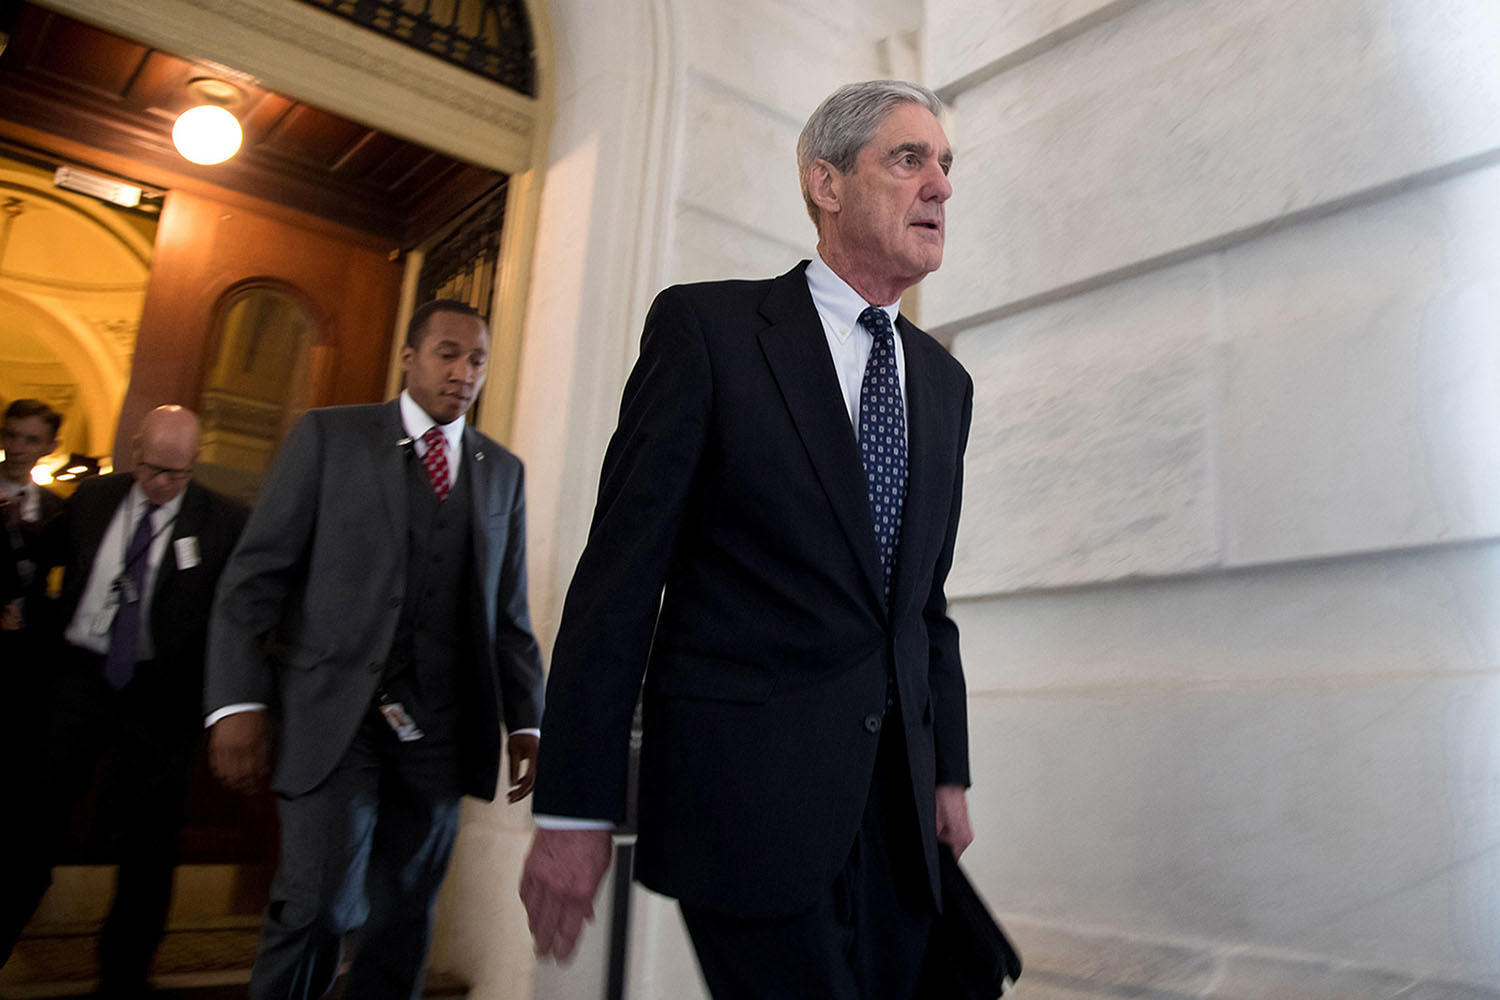 Former FBI Director Robert Mueller, front, the special counsel probing Russian interference in the 2016 U.S. election, leaves the Capitol building after meeting with the Senate Judiciary Committee on Capitol Hill on June 21, 2017, in Washington, D.C. (Ting Shen/Xinhua/Zuma Press/TNS)